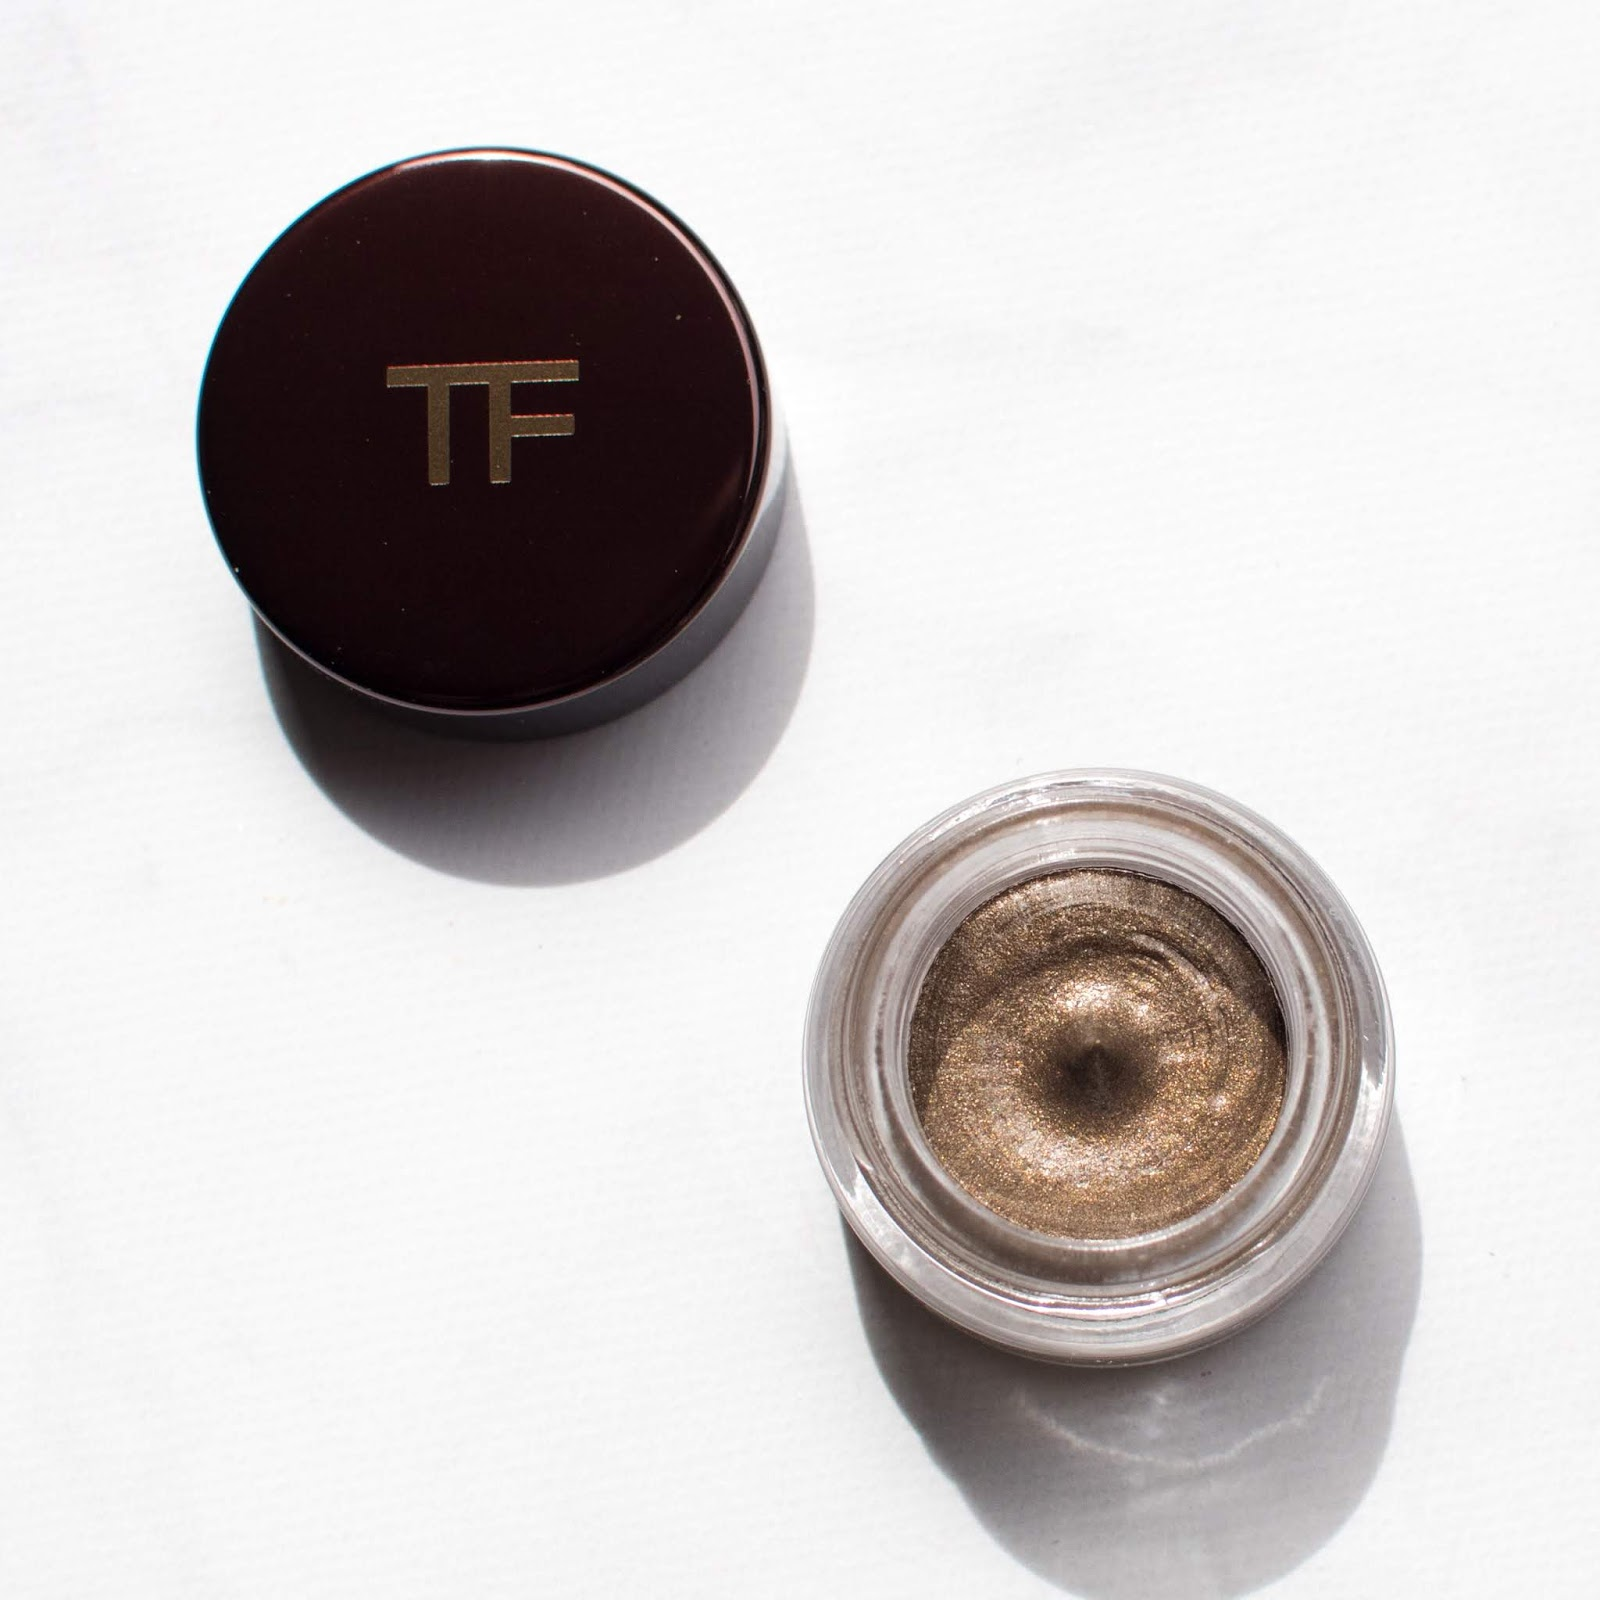 Tom Ford Cream Color for Eyes in Burnished Copper